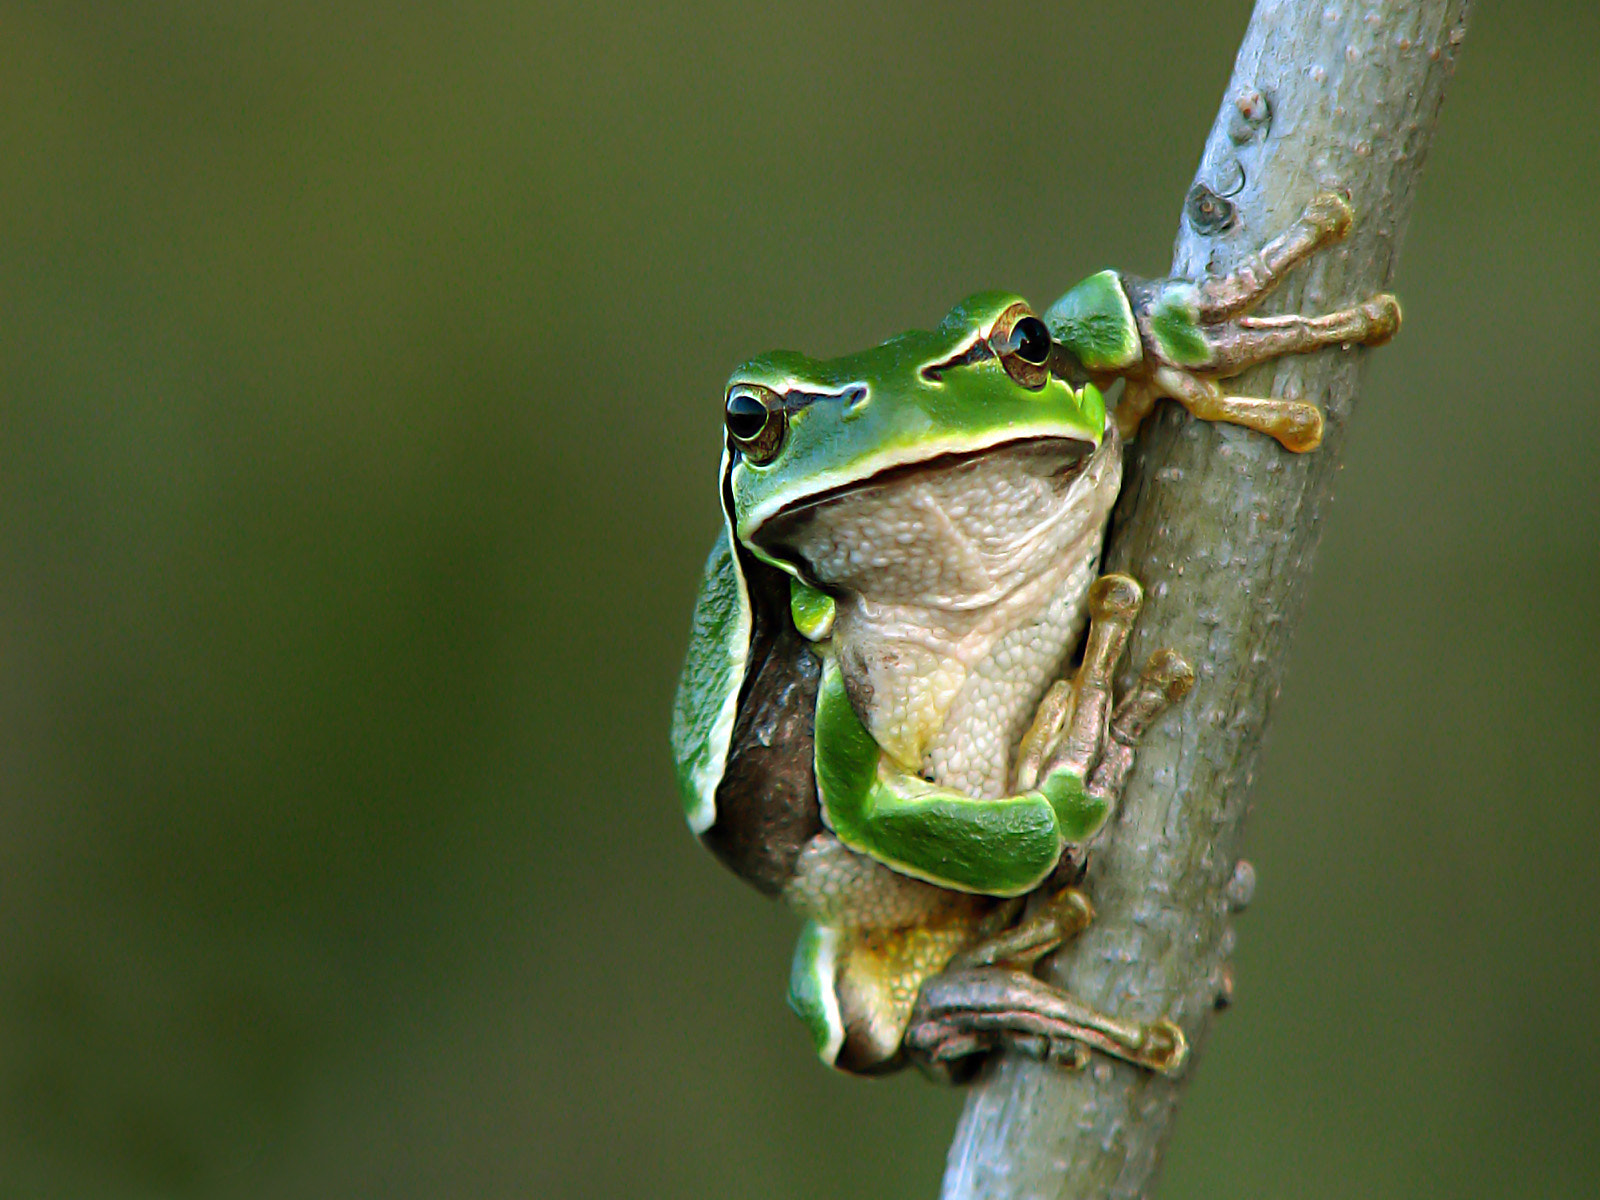 Photograph Hyla arborea by Minghir Victor on 500px